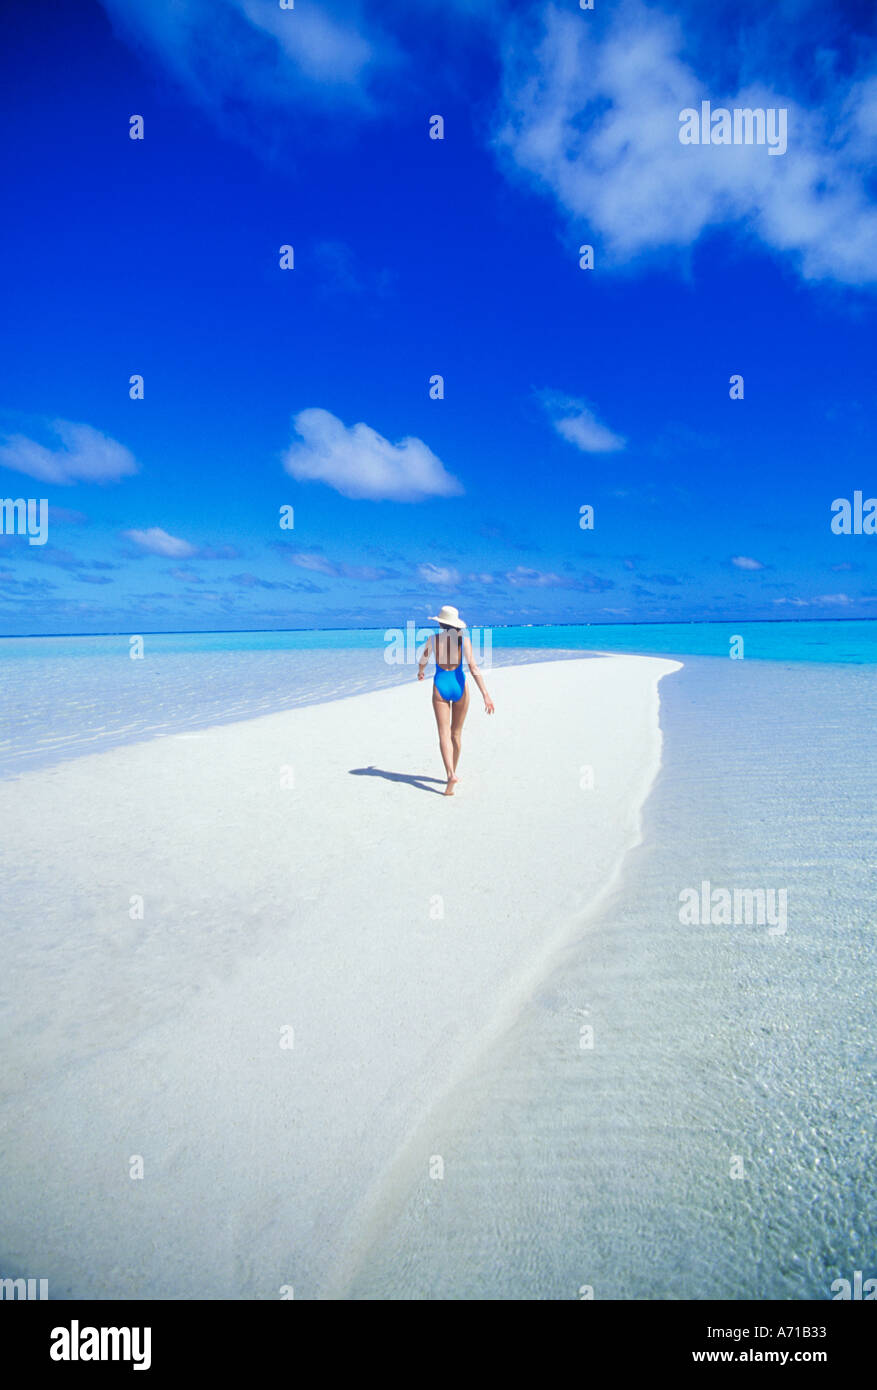 Woman in swimsuit walking on sandbar in Aitutaki Lagoon in the Cook Islands South Pacific Ocean model released image - Stock Image